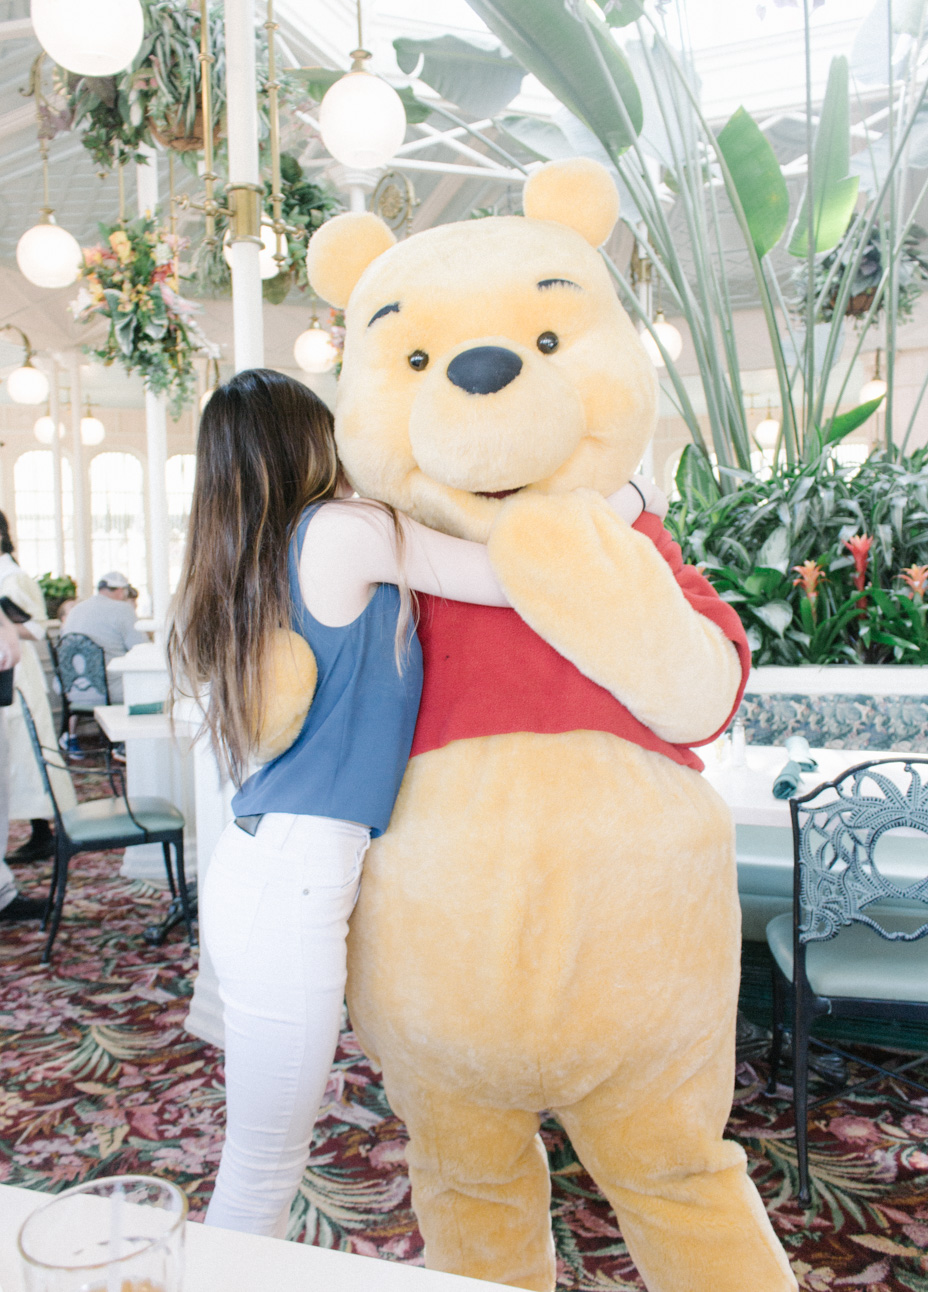 Big huggie with Pooh at the Crystal Palace while buffet feasting x